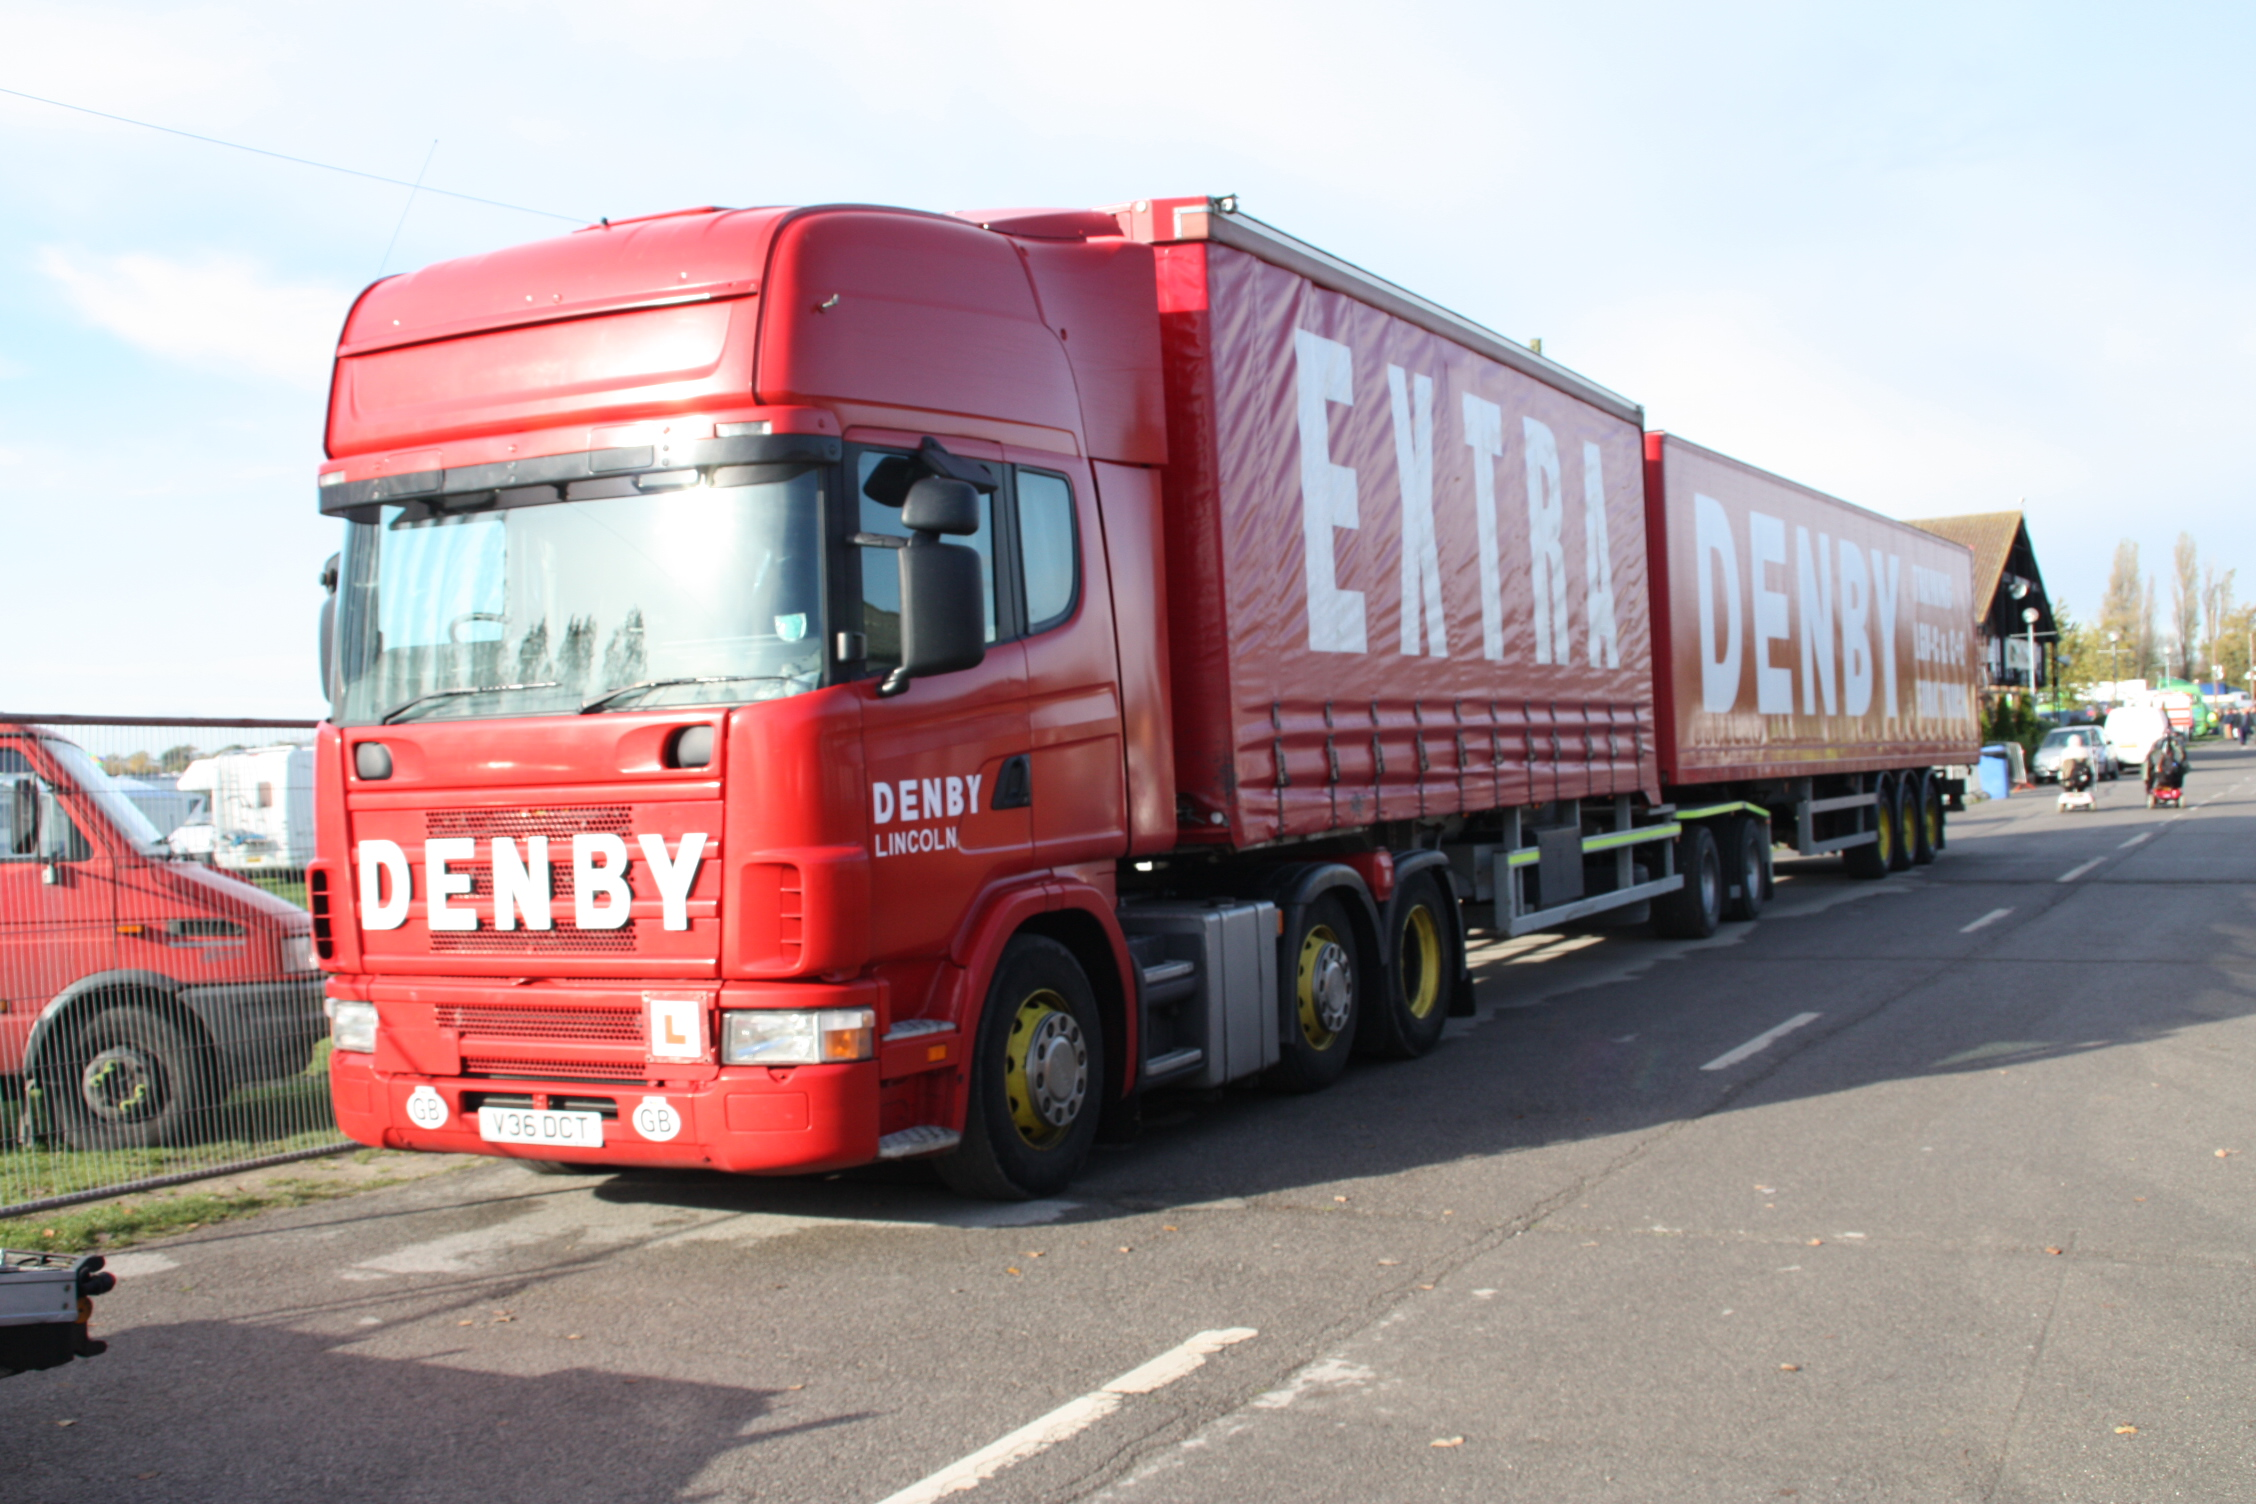 Denby_Eco--link_(roadtrain)_at_Newark_2009_-_IMG_5718.jpg